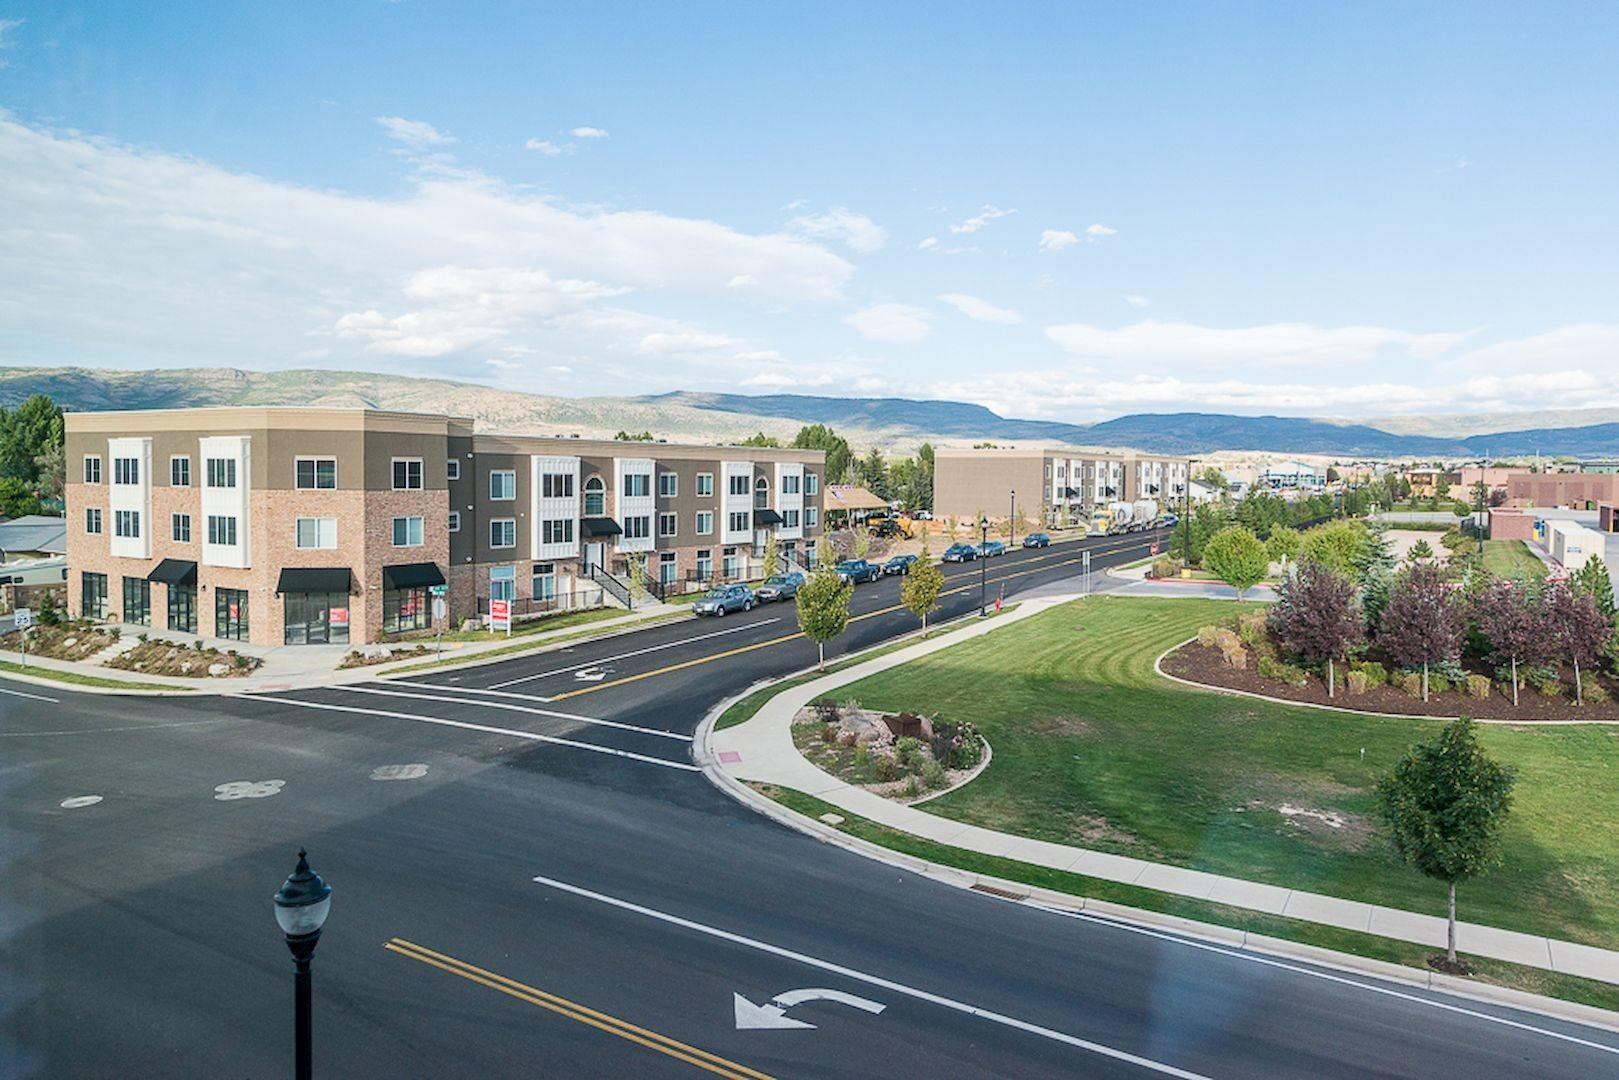 FIG's new fourplex development in Heber, Utah